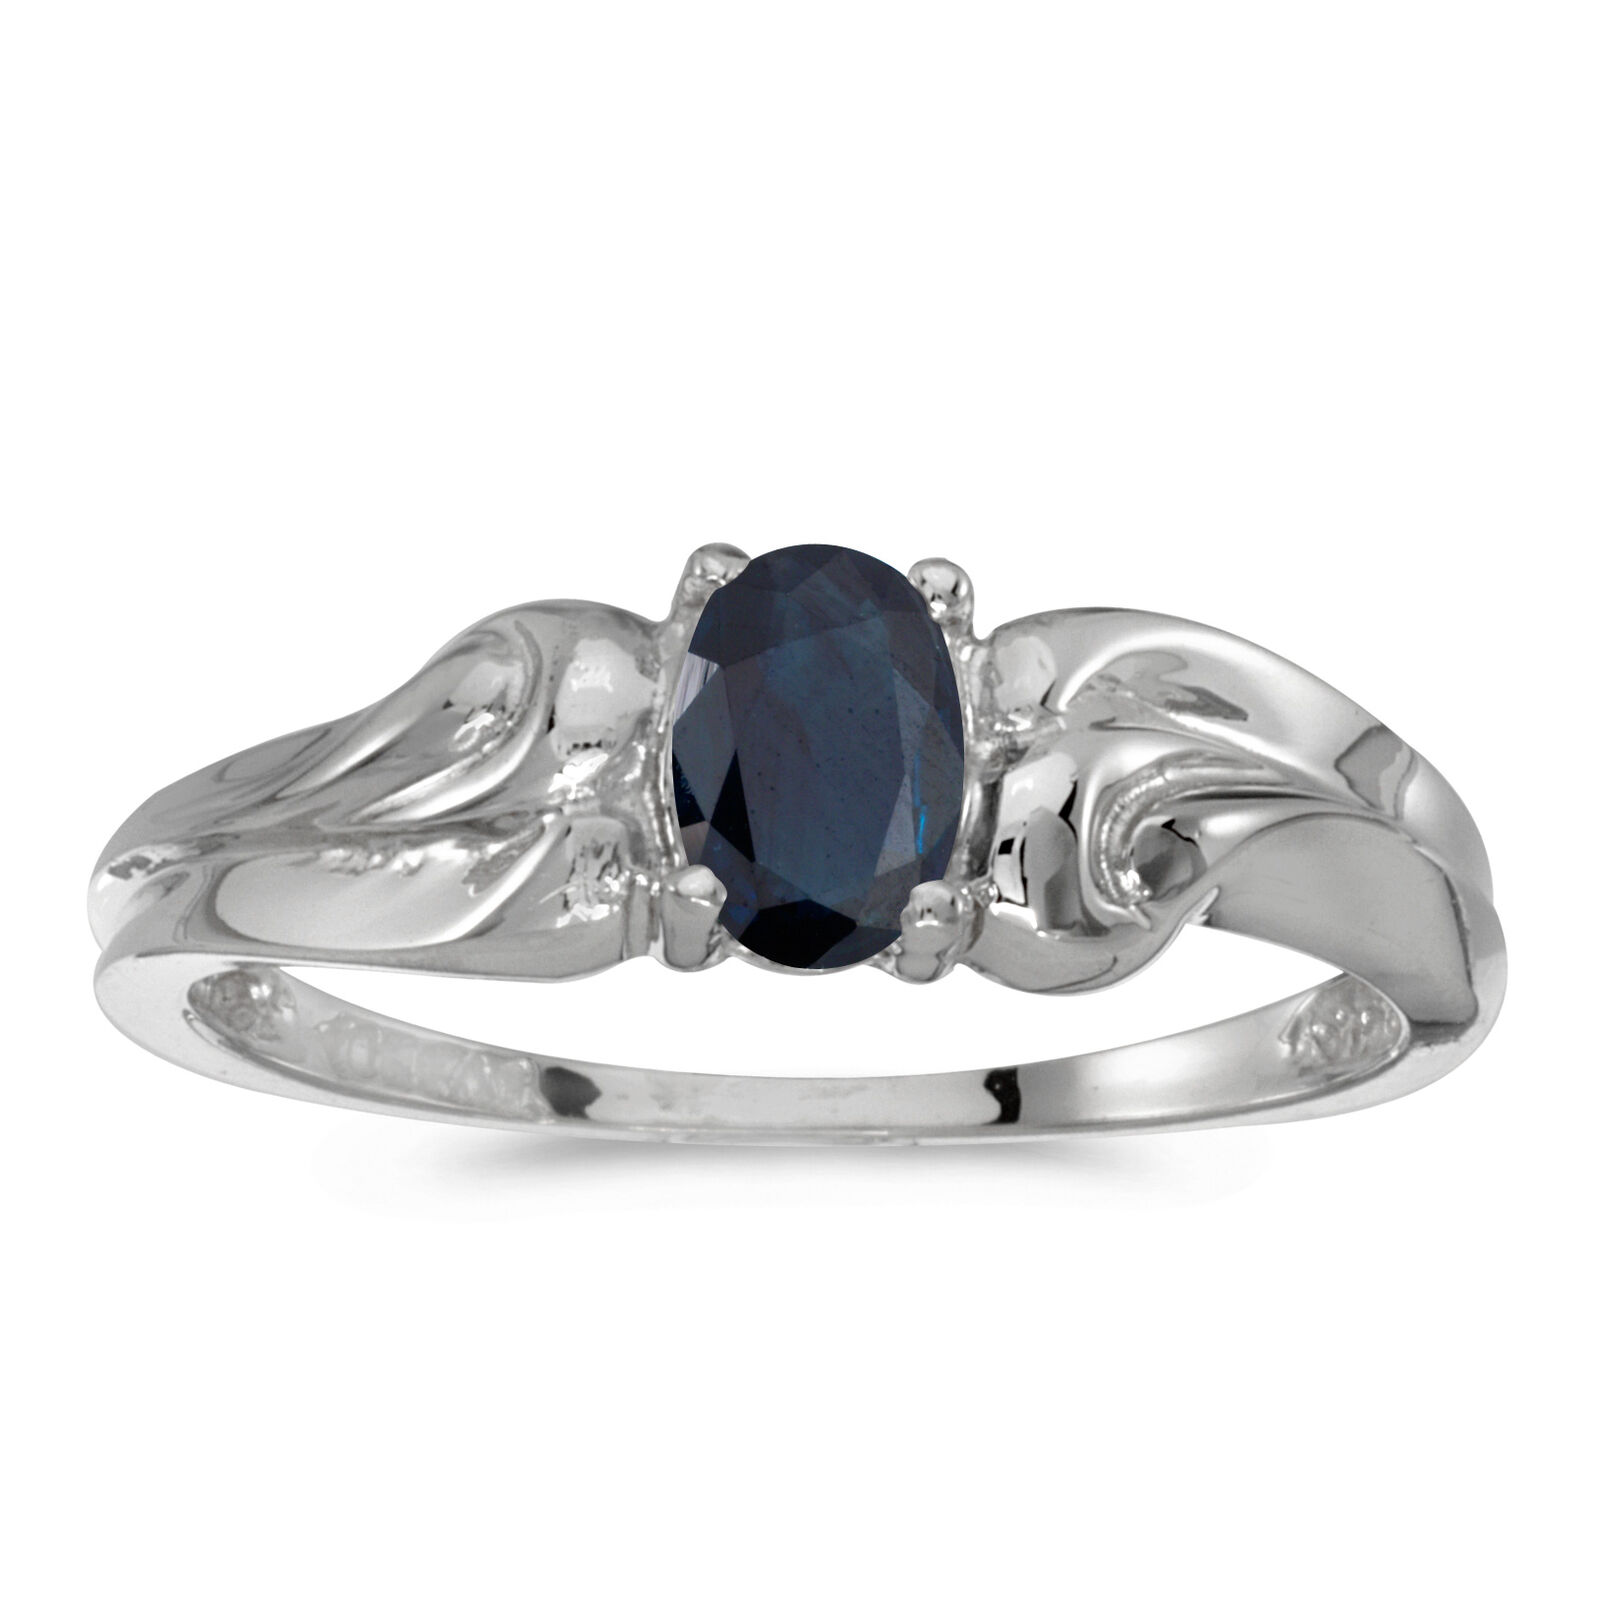 14k White gold Oval Sapphire Ring